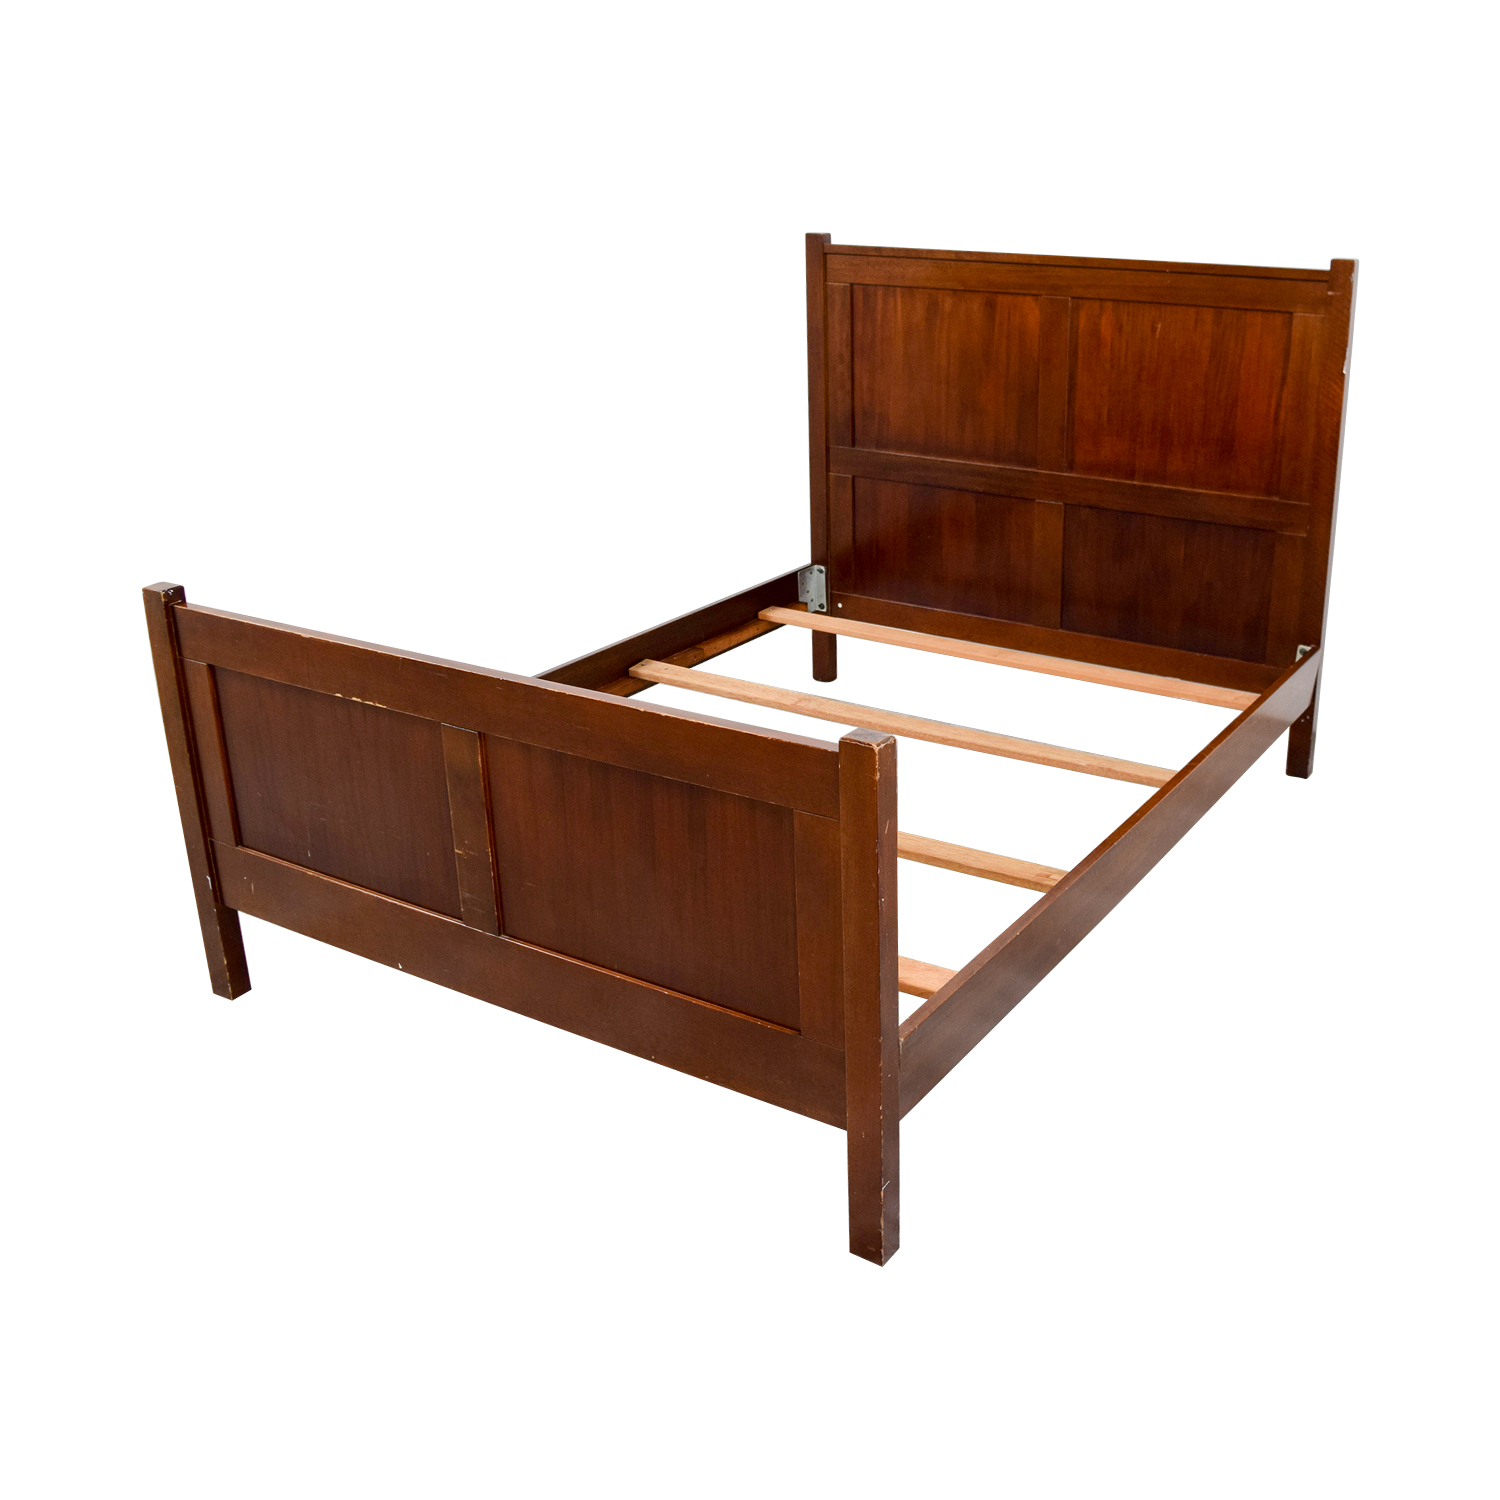 90 off pottery barn pottery barn wood full bed frame beds for Used wooden bed frames